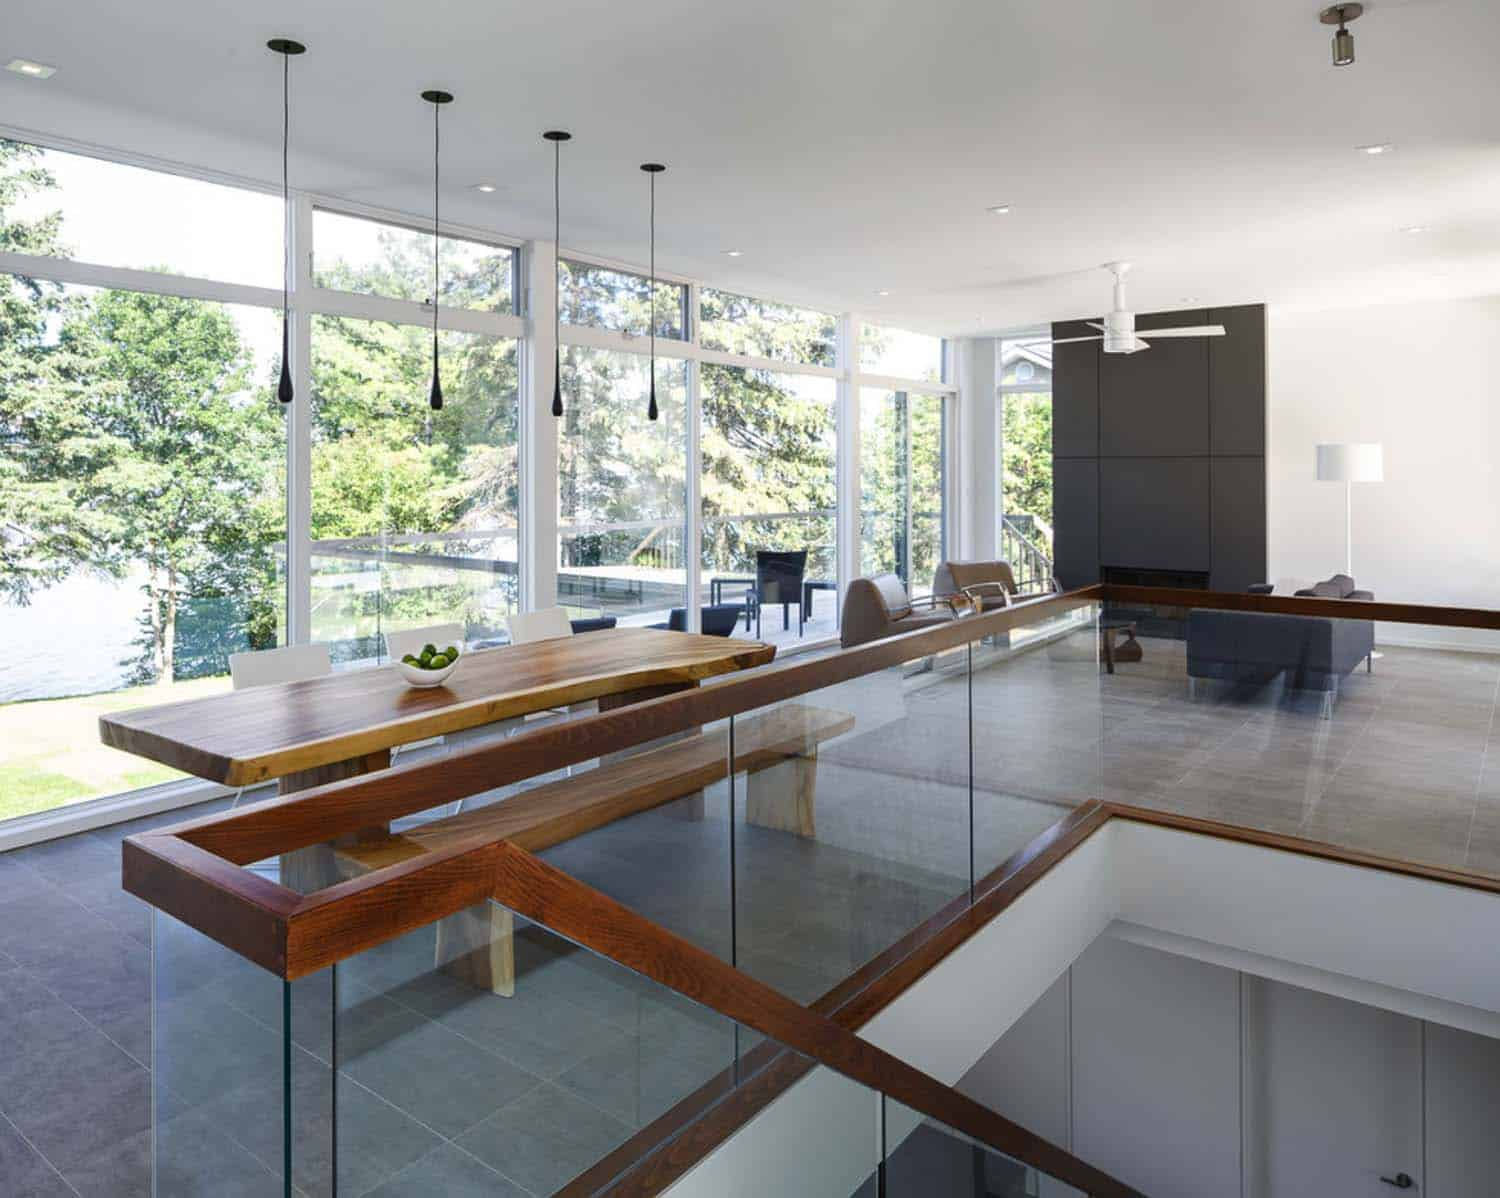 Modern Home Design-Christopher Simmonds Architect-03-1 Kindesign